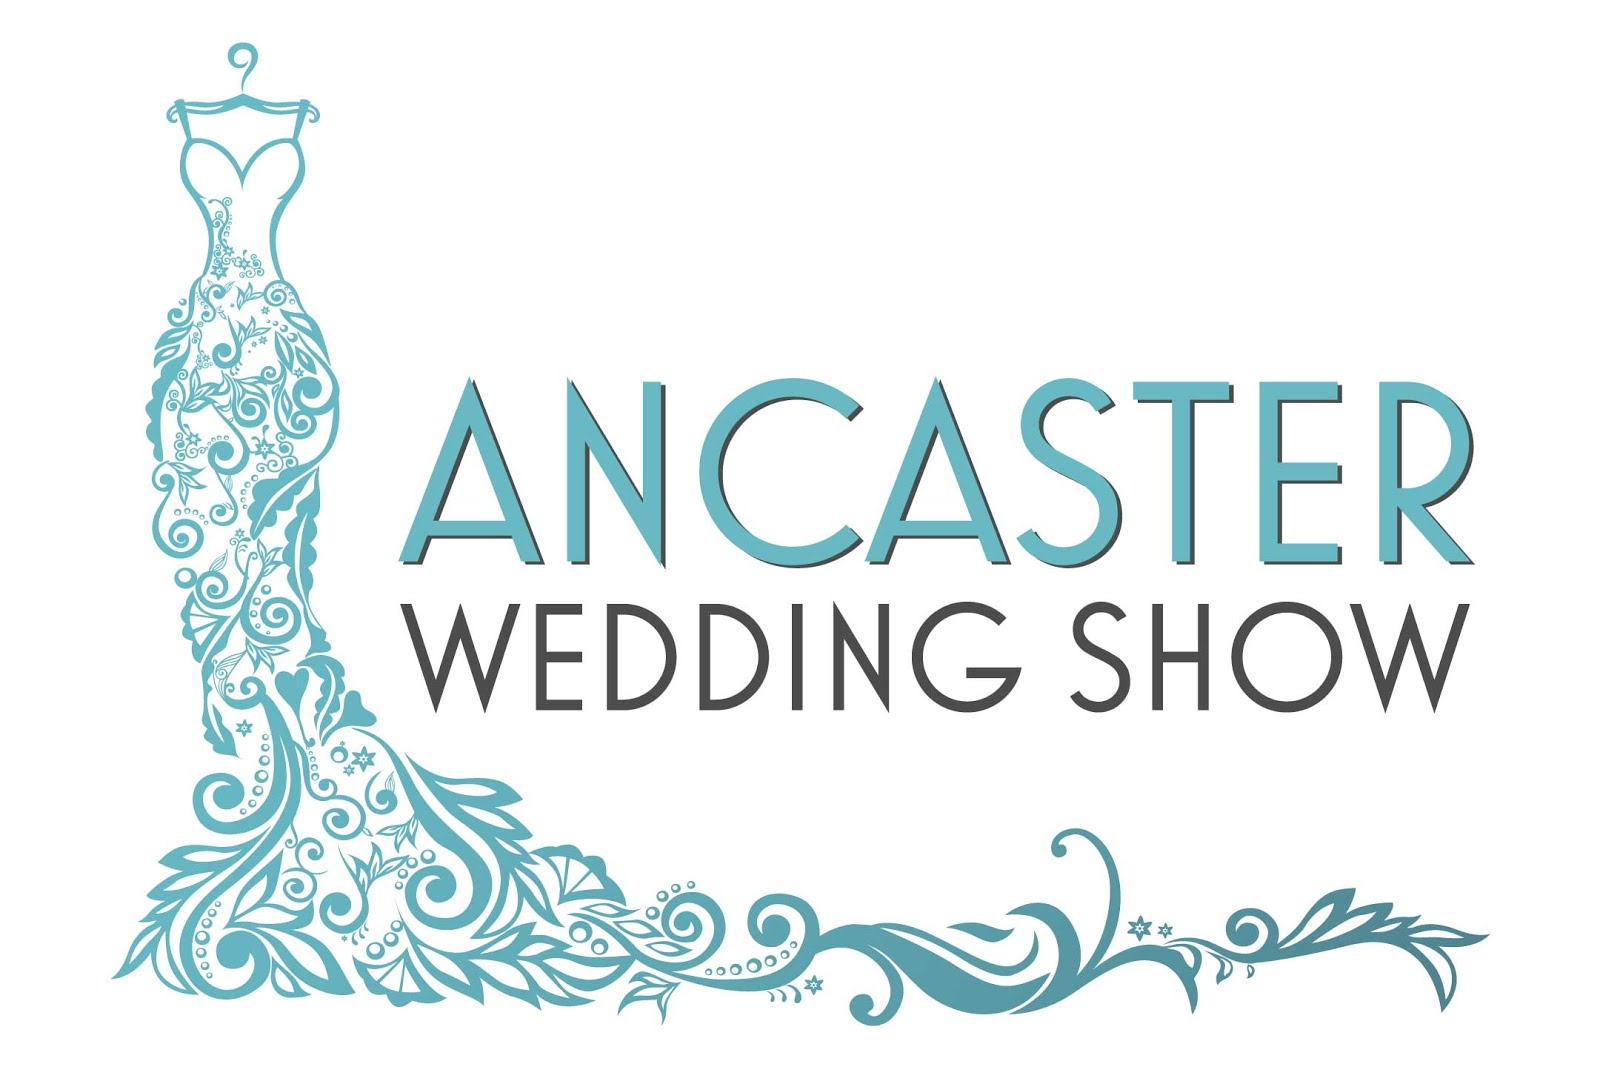 Ancaster Wedding Show